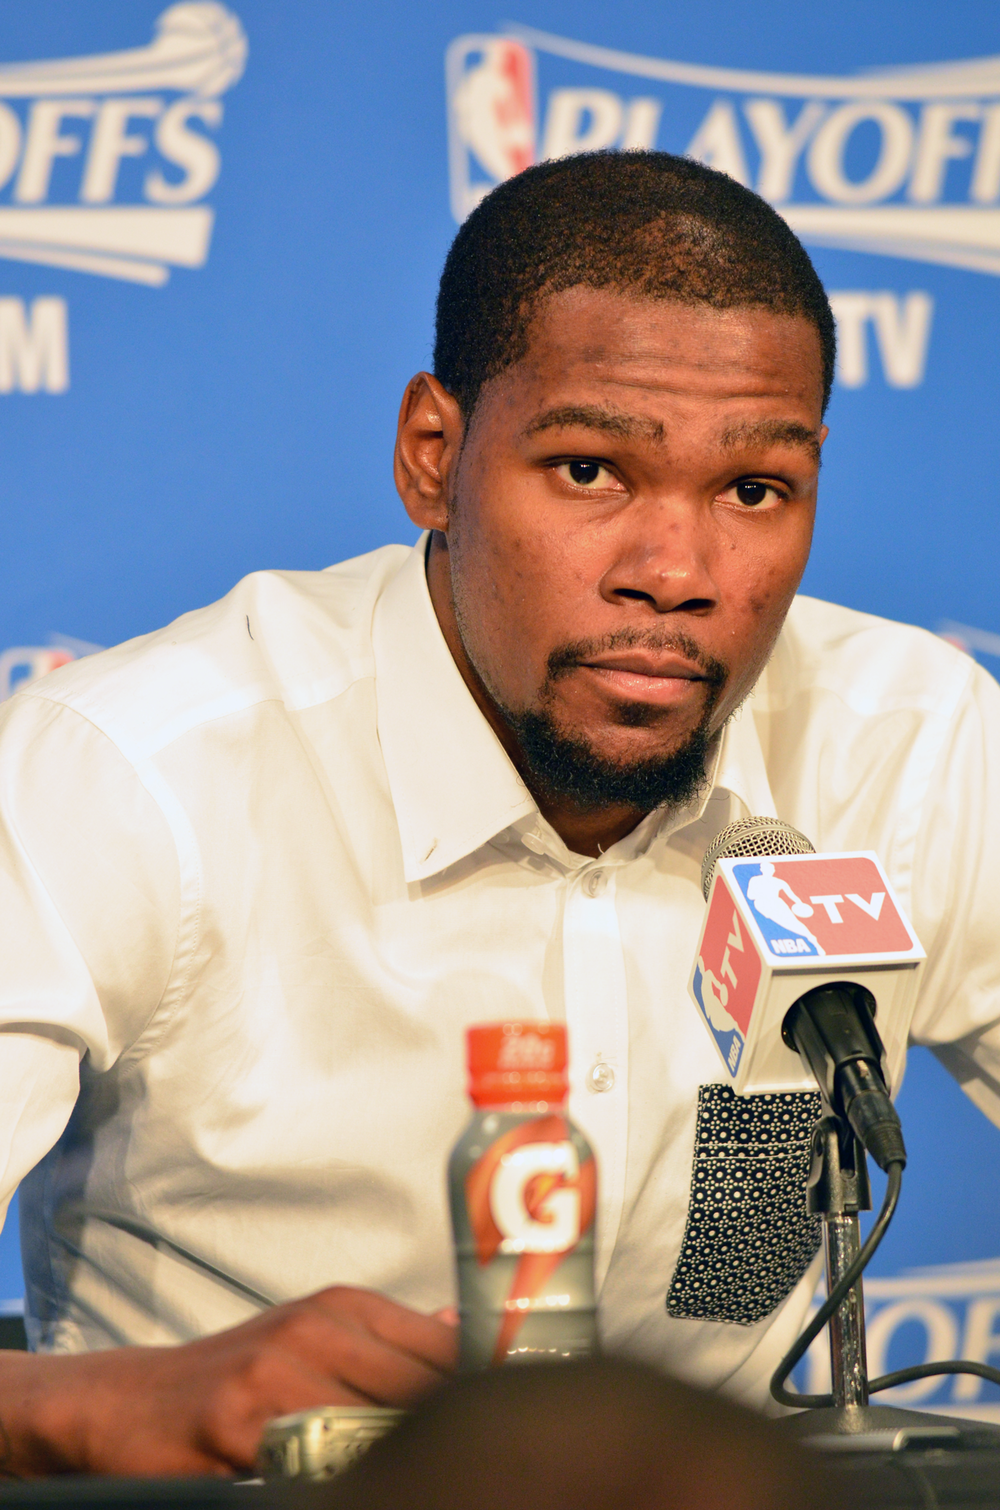 Kevin Durant speaks to the media after the Thunder's 111-105 overtime loss to Memphis Monday night. Photo by Torrey Purvey for InsideThunder.com